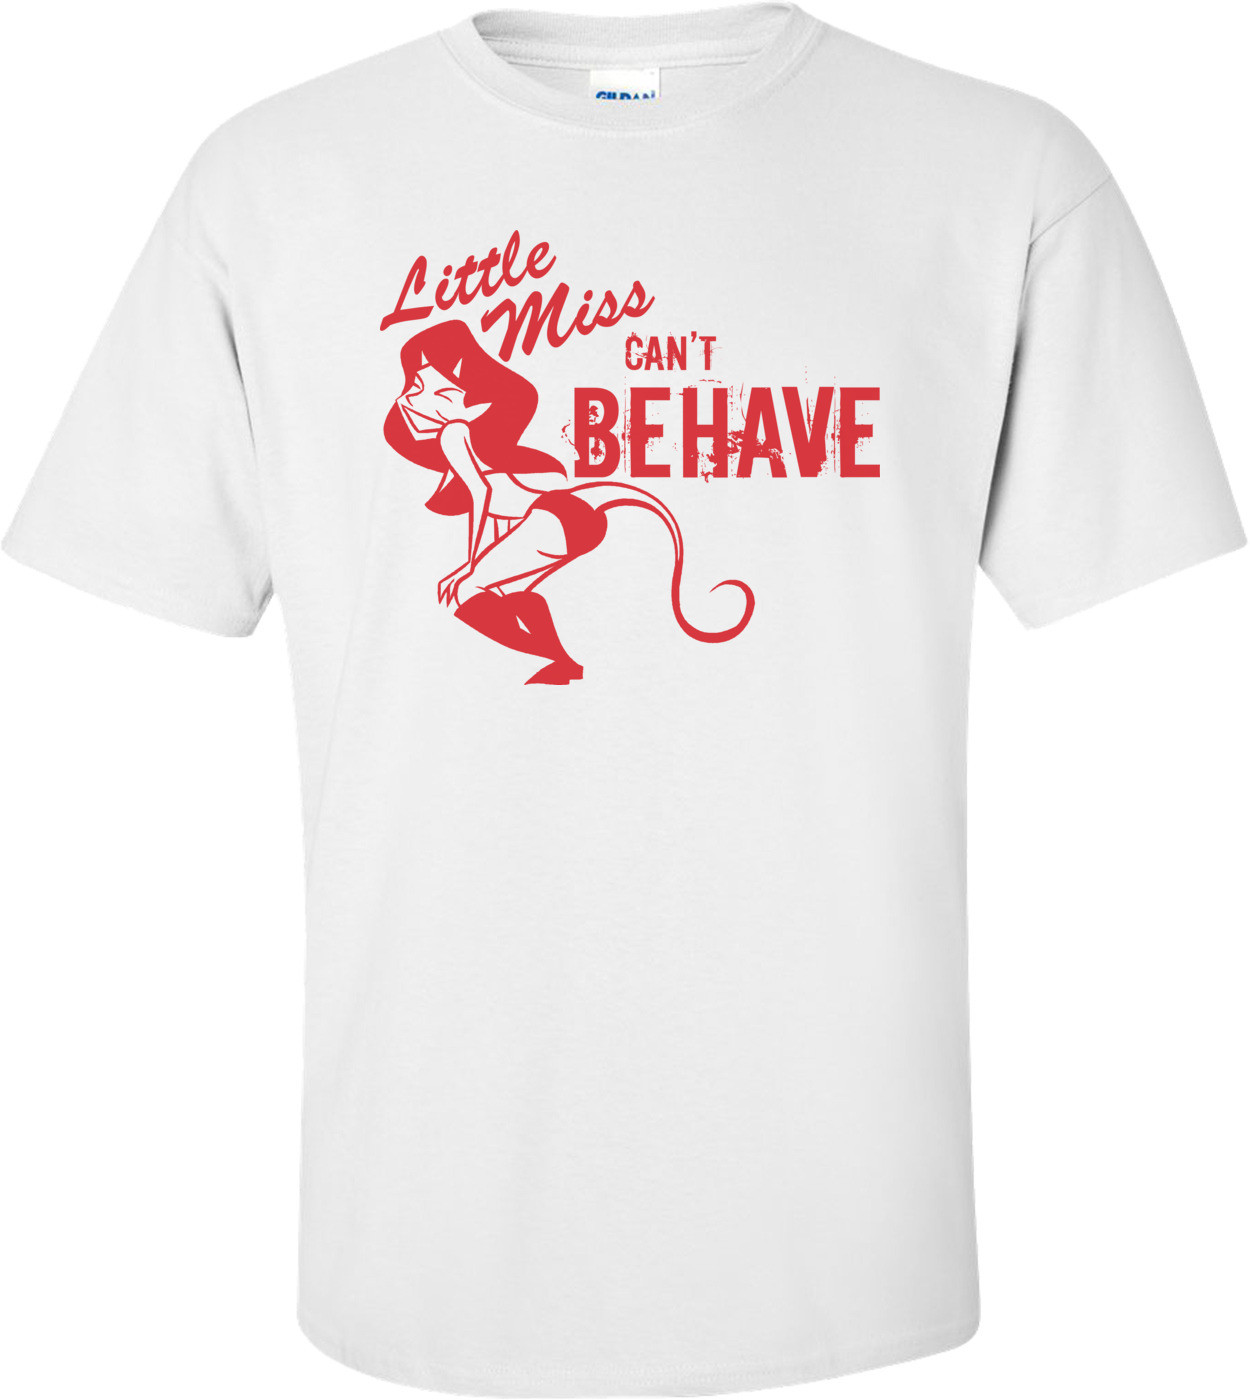 Little Miss Can't Behave T-shirt